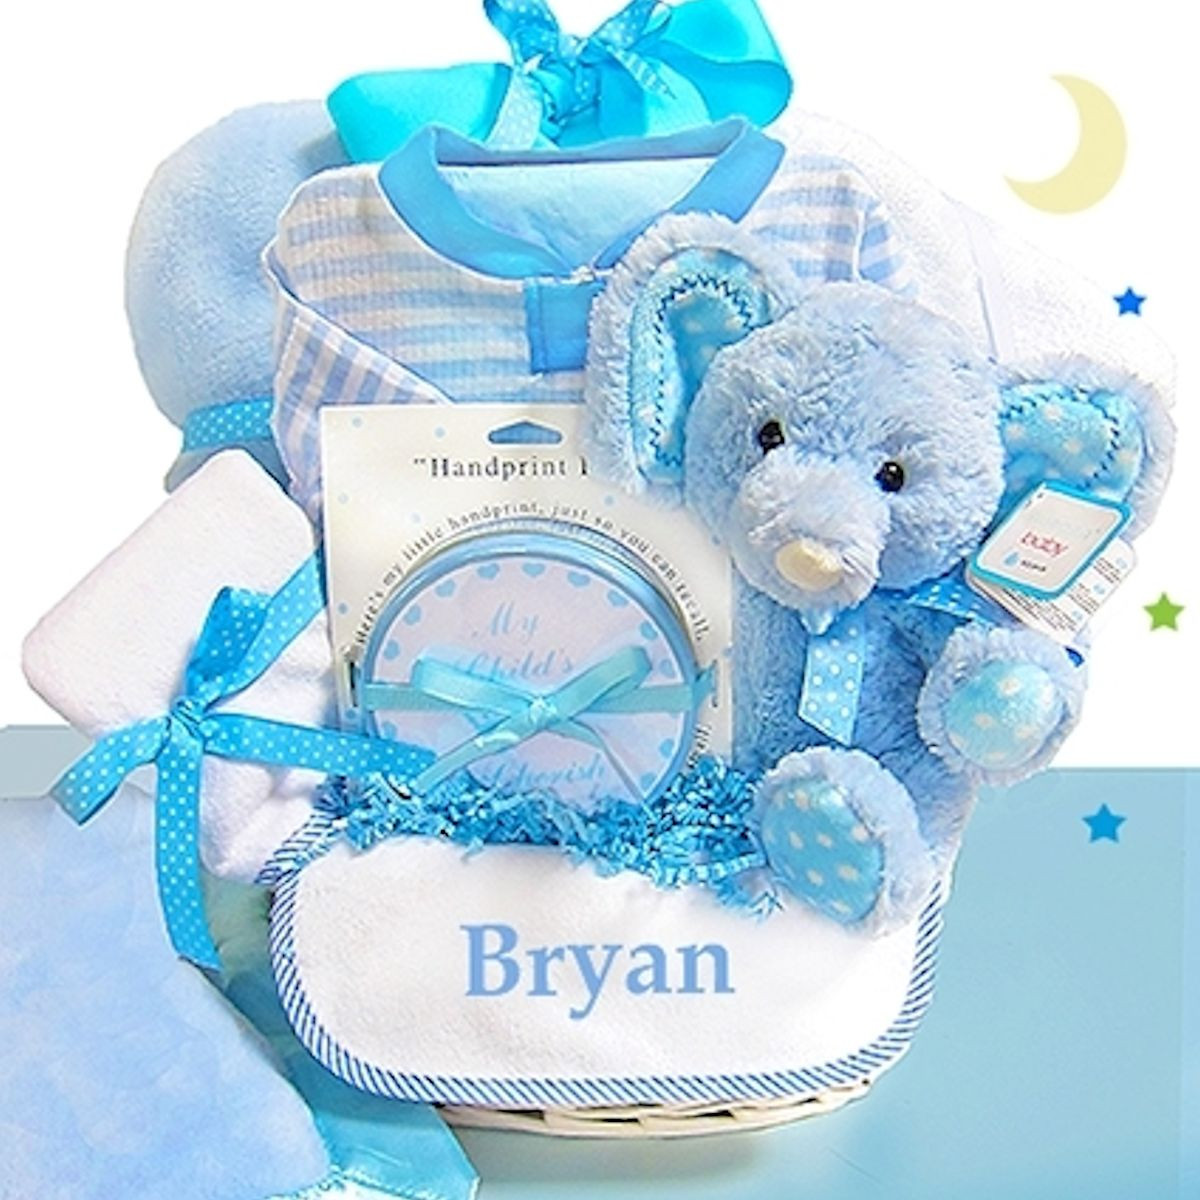 Best ideas about Newborn Baby Boy Gift Ideas . Save or Pin Baby Boy Gift Basket Blue Elephant Now.